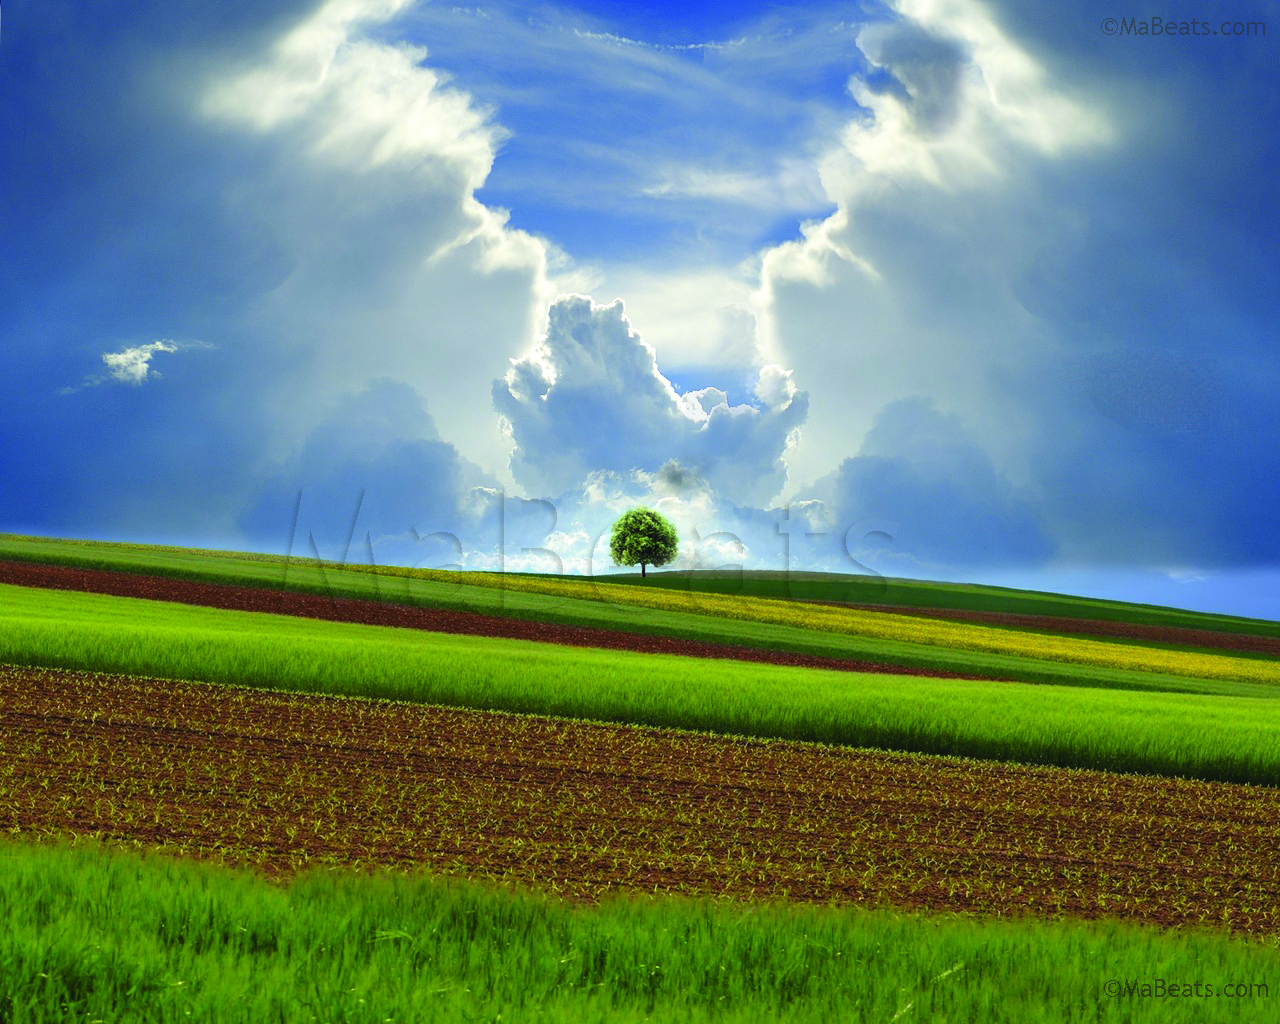 Tree standing alone in a green farm field with the cloudy blue sky background. best for desktop wallpaper